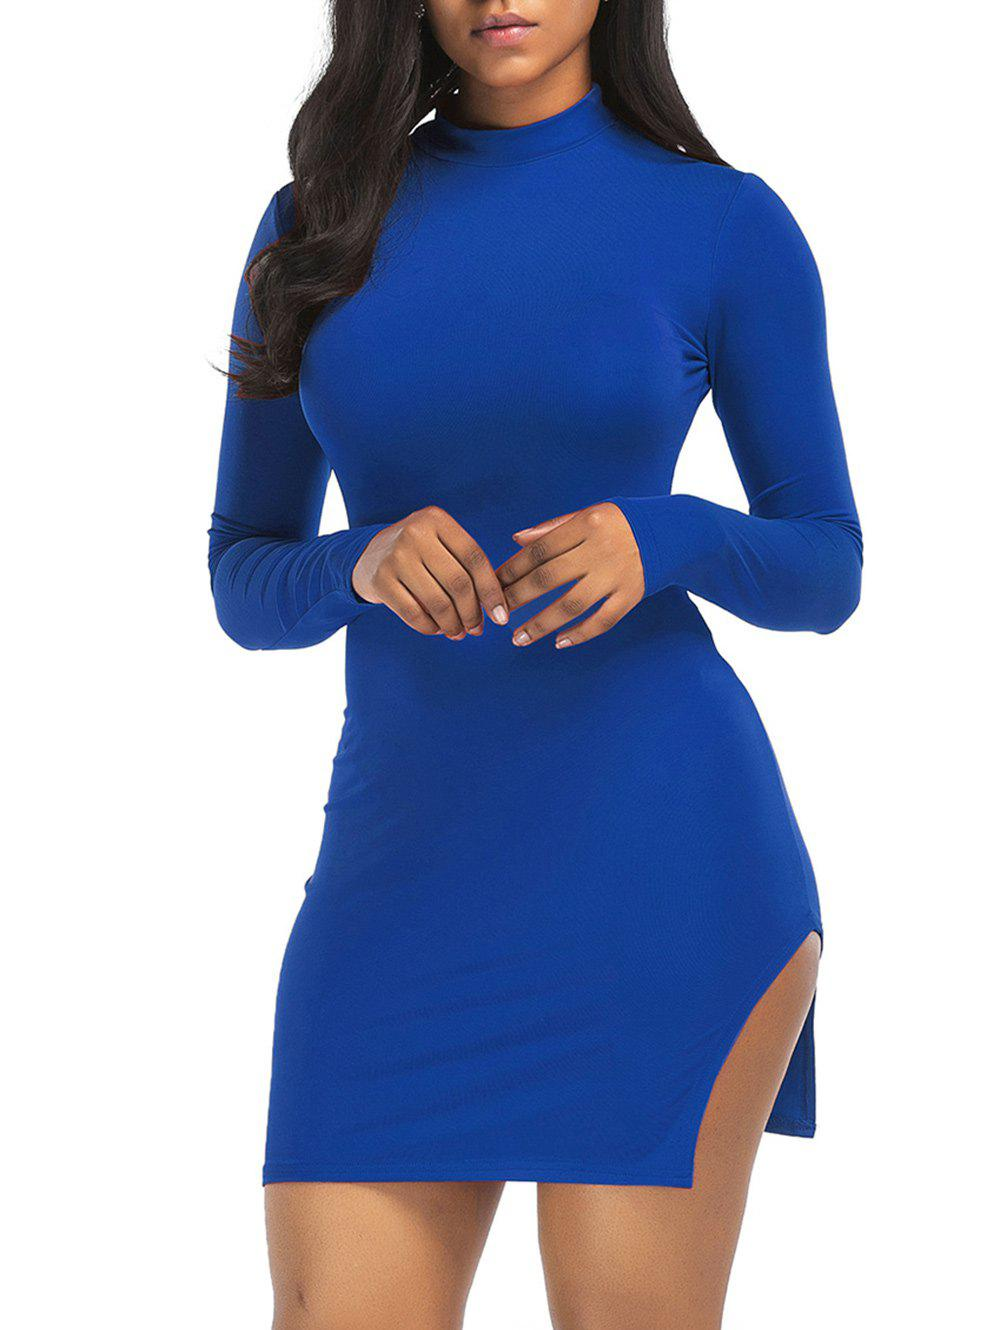 High Neck Slit Mini Bodycon Dress - BLUE XL